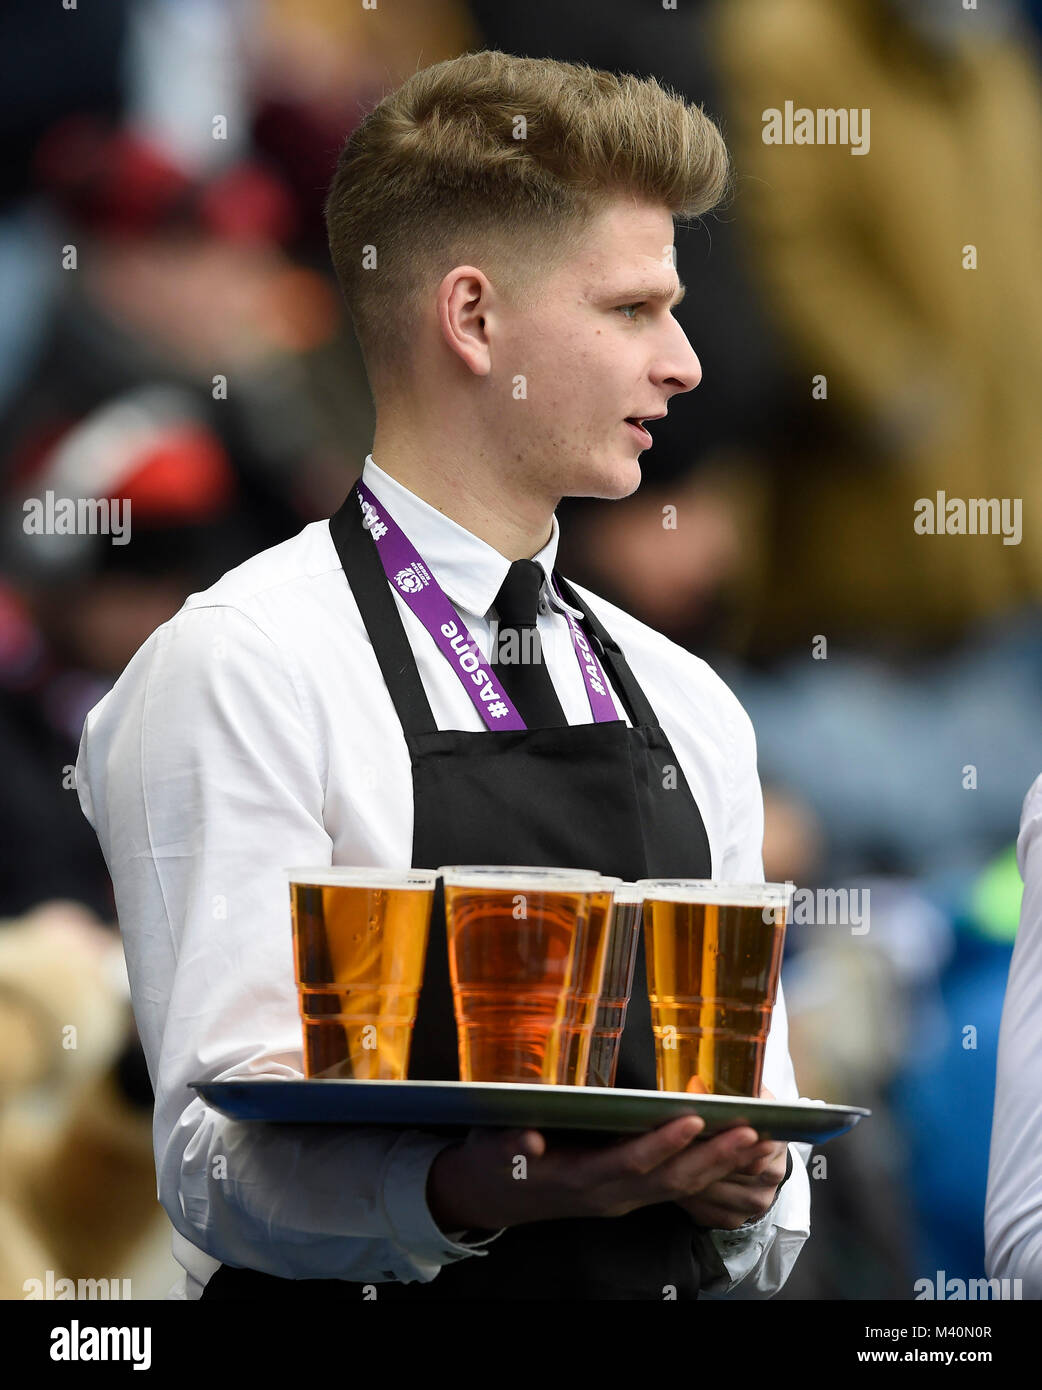 A waiter holding a tray of beer before a Six nations rugby international at BT Murrayfield Stadium, Edinburgh. - Stock Image